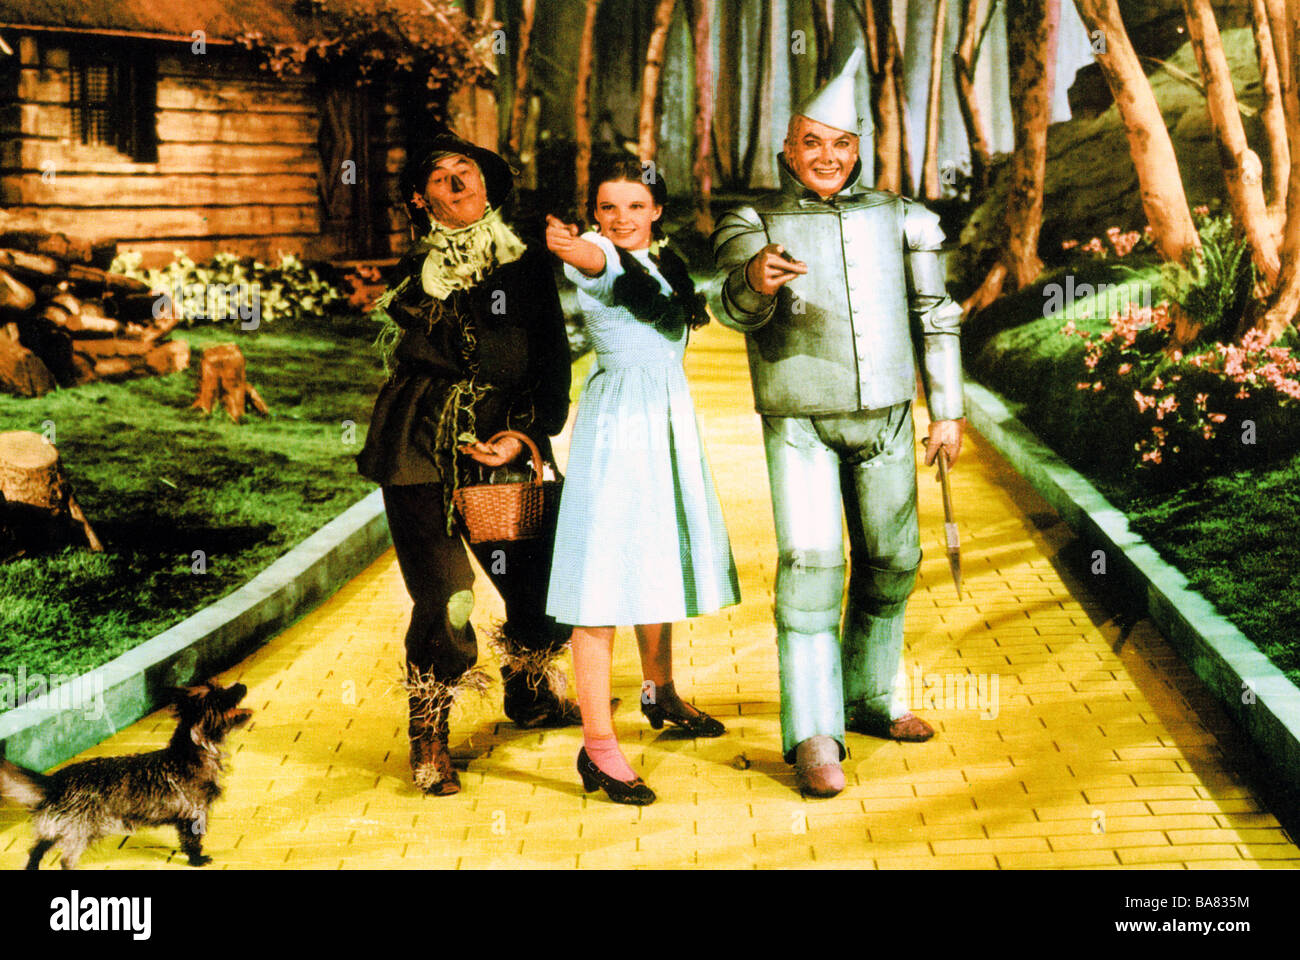 The Wizard Of Oz 1939 Mgm Film With From Left Ray Bolger As The